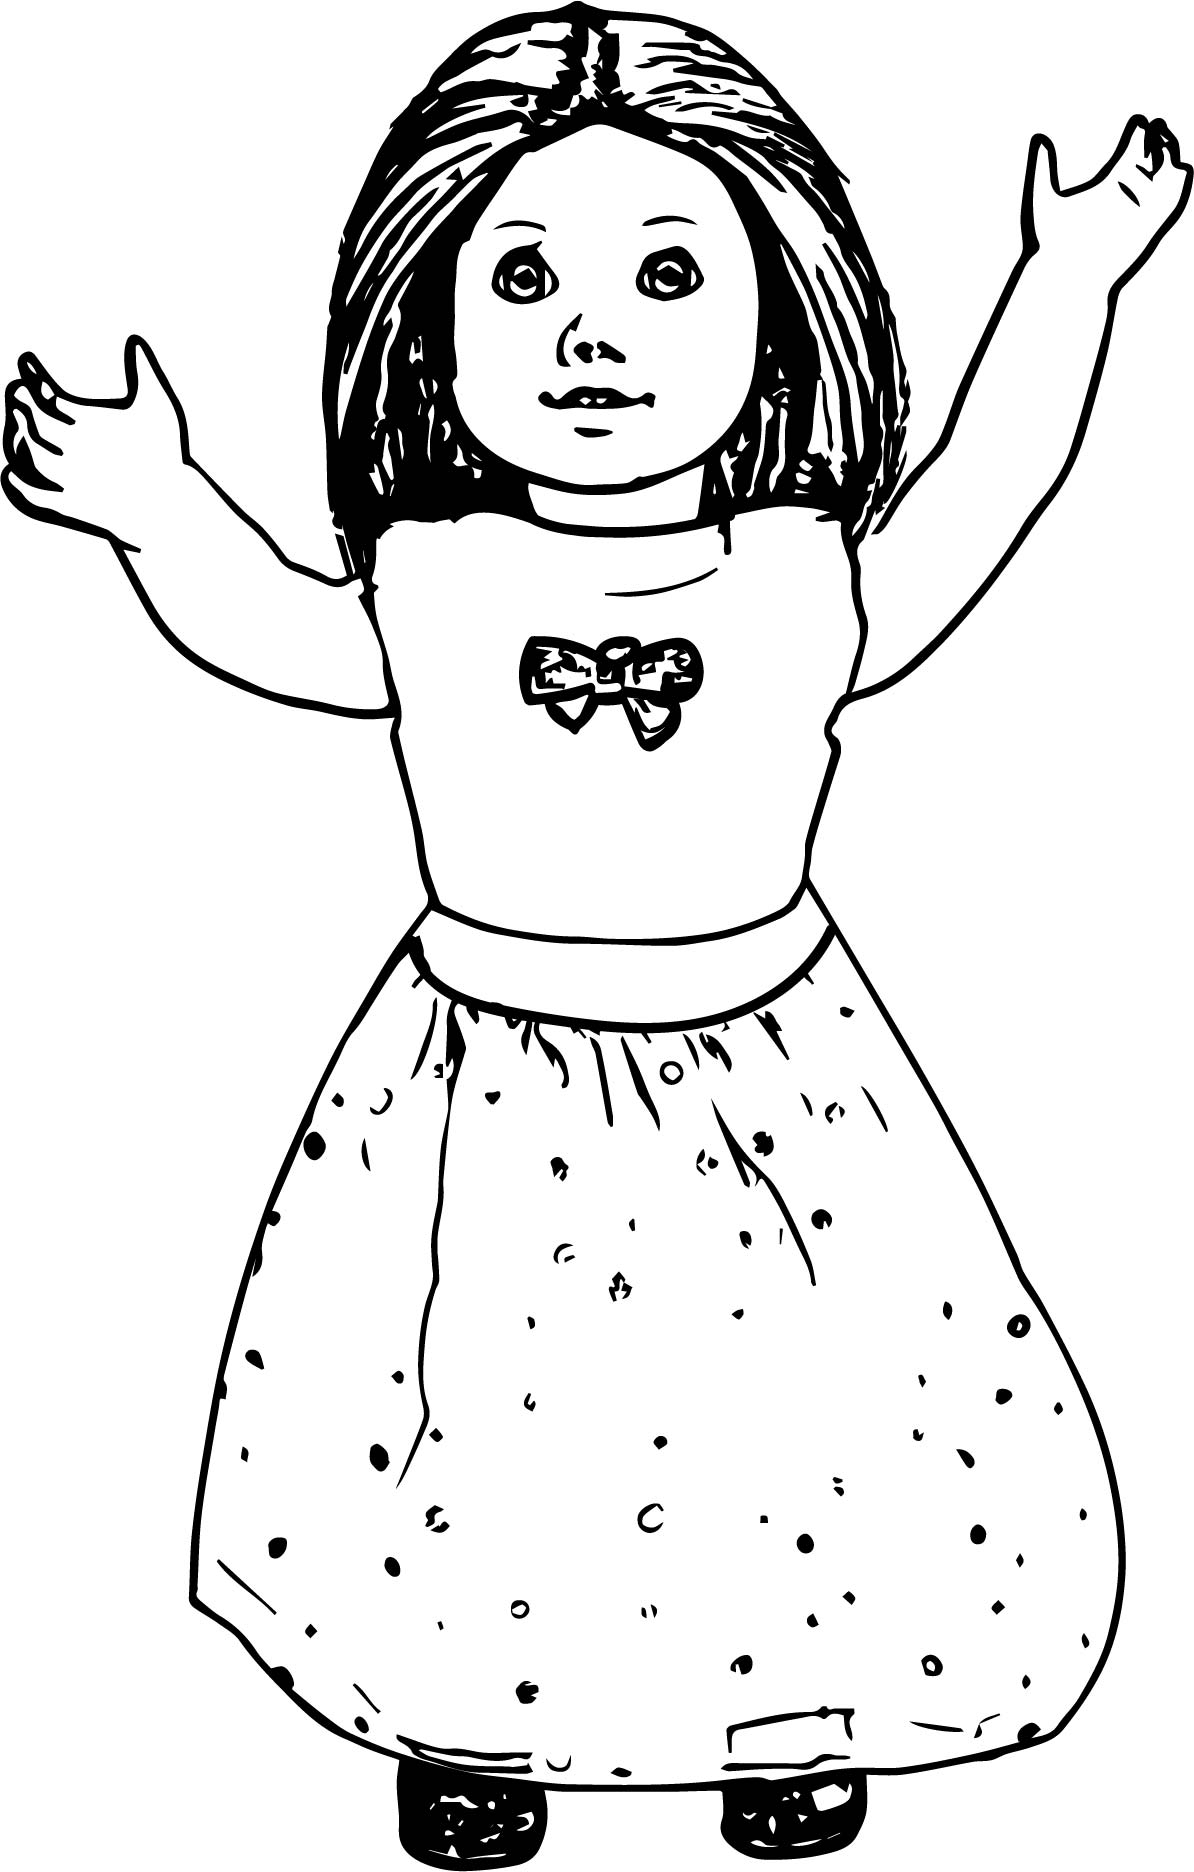 american girl doll coloring pages to print american girl doll coloring pages educative printable pages to american girl doll print coloring